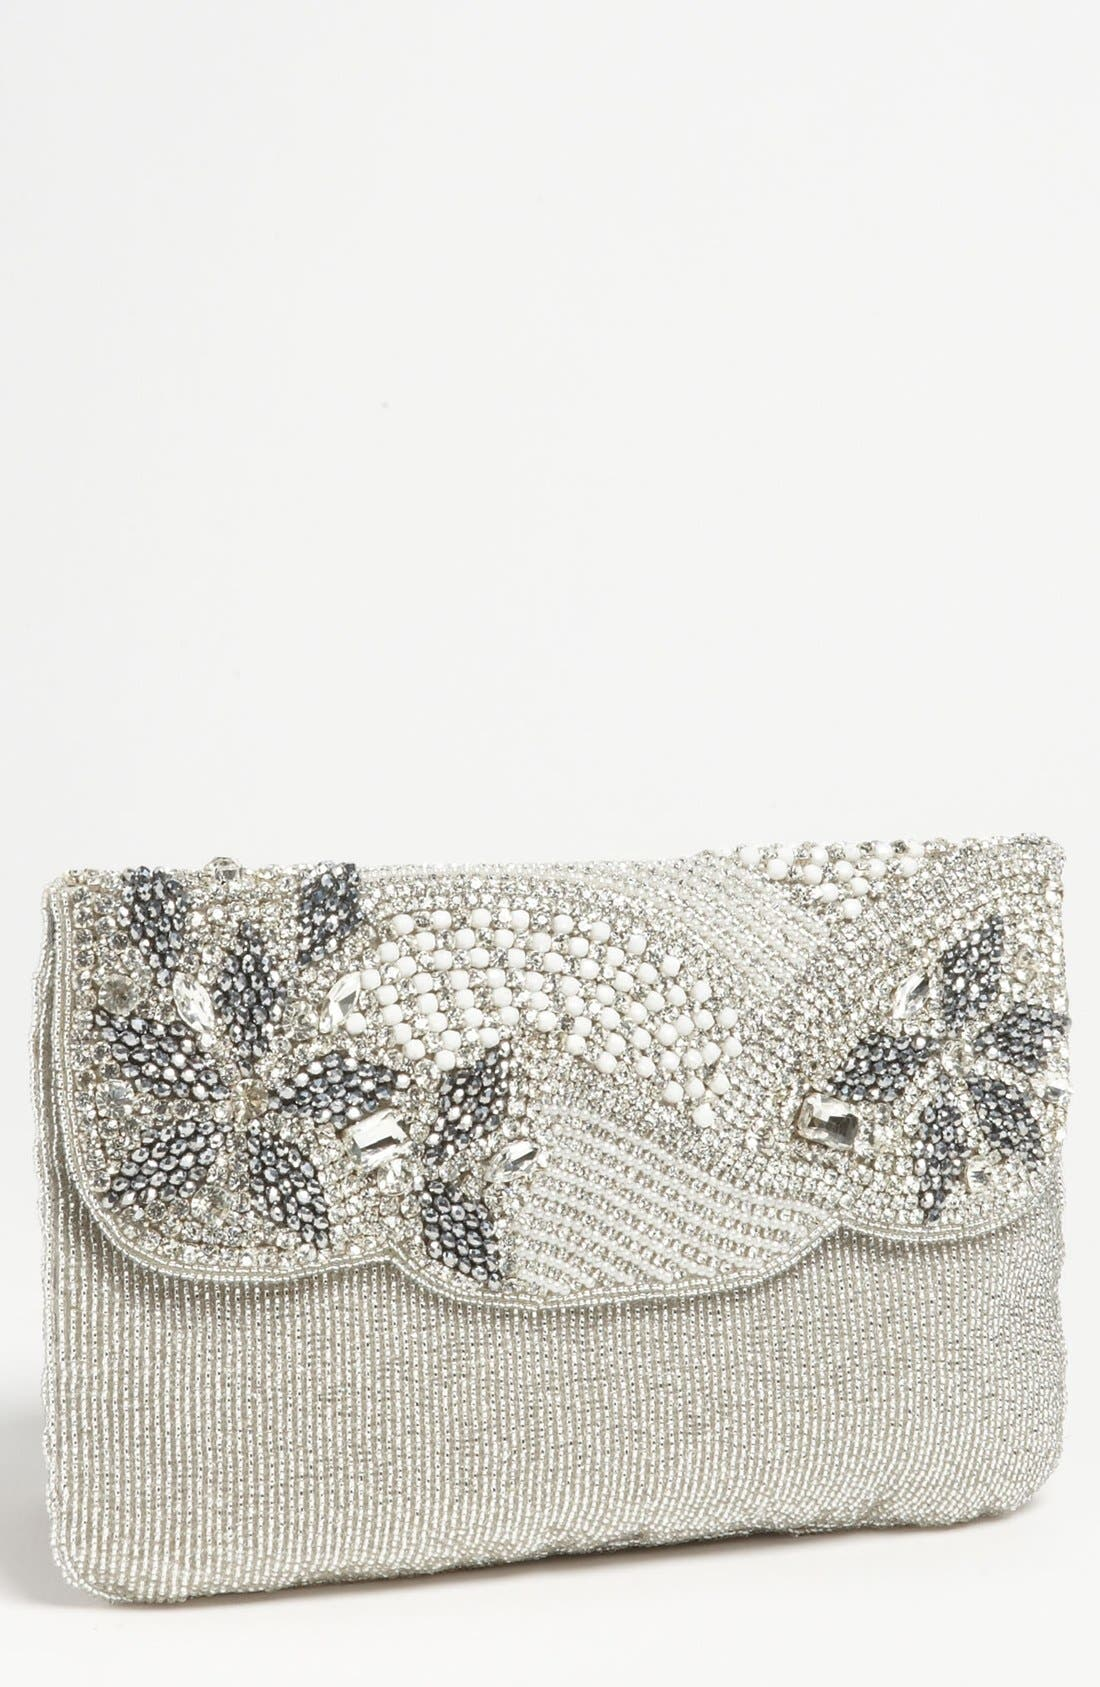 Alternate Image 1 Selected - Micky London Handbags Beaded Envelope Clutch